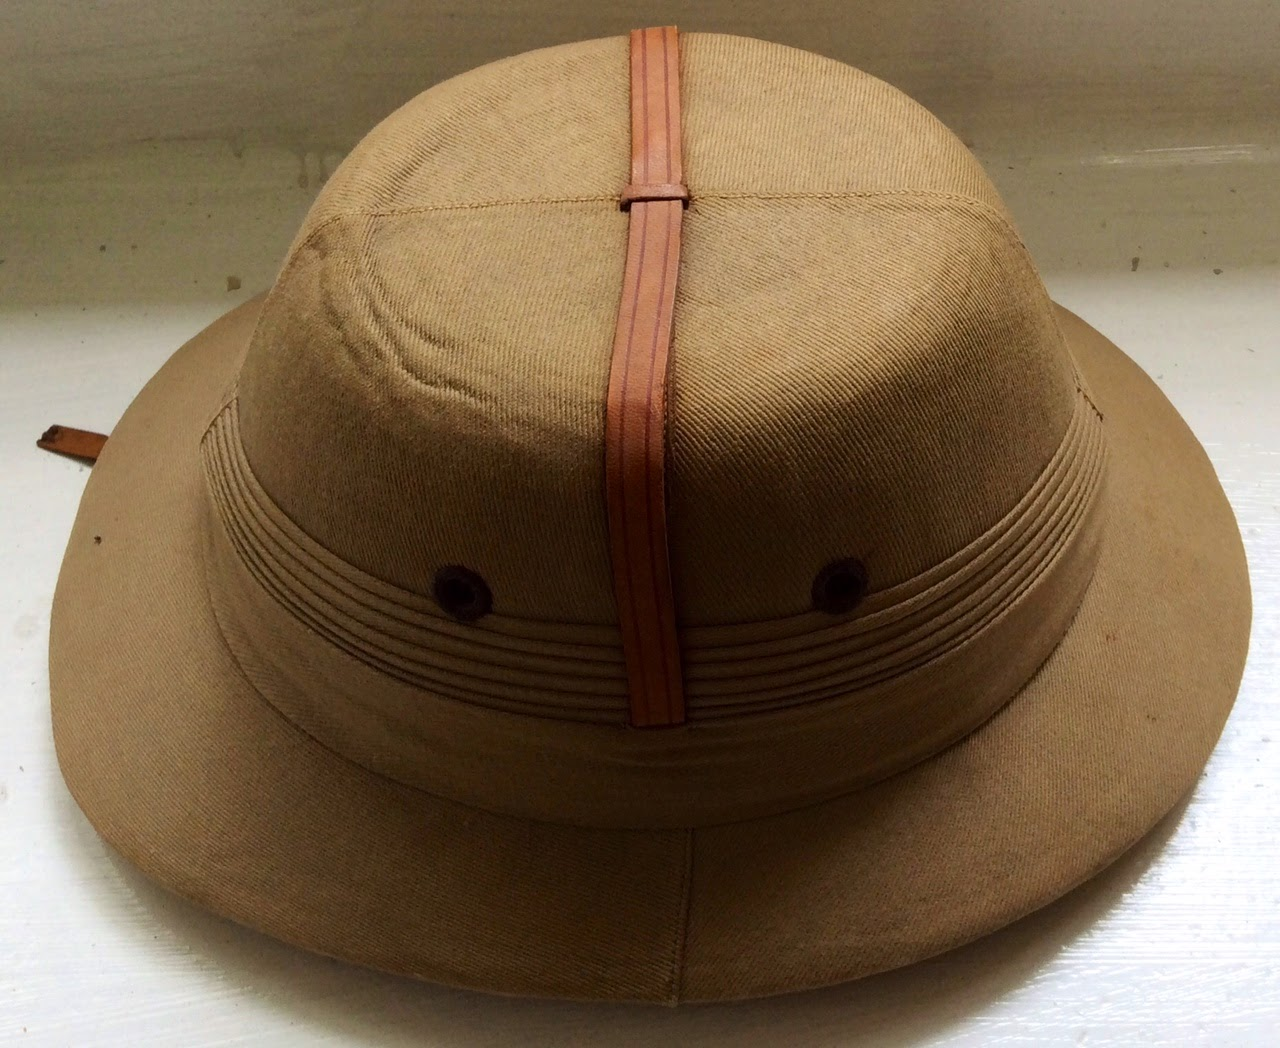 John Callanan Hats: What is a Pith Helmet